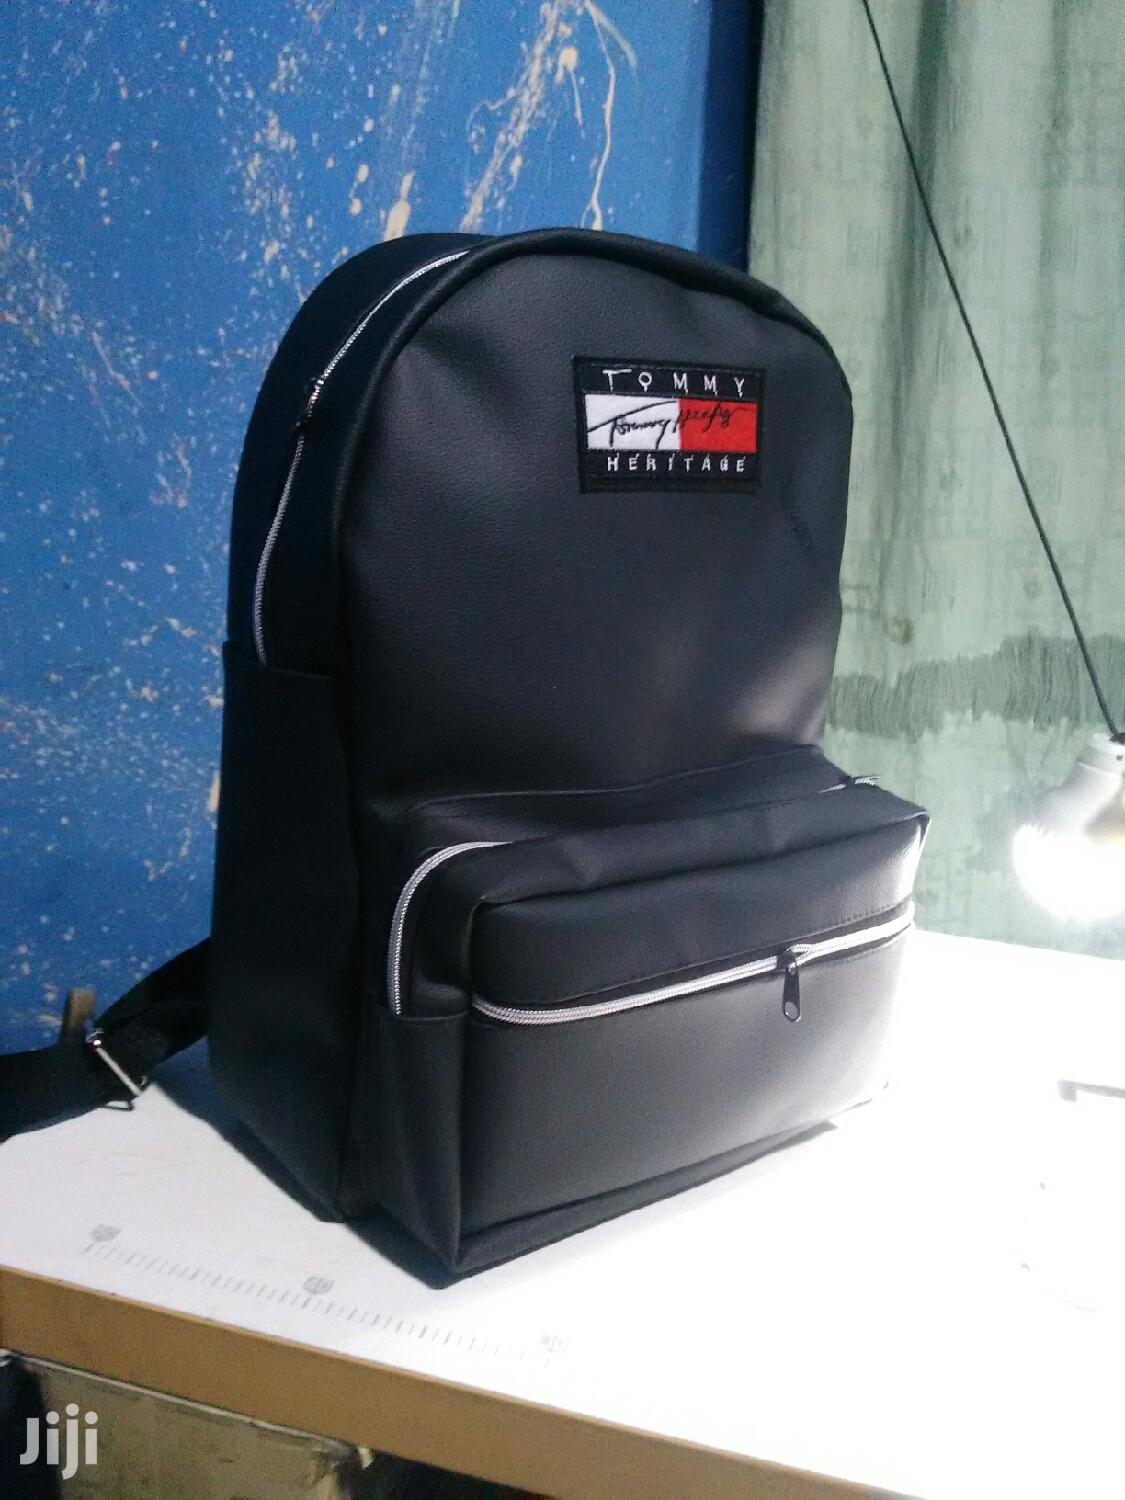 Tommy Black Backpack | Bags for sale in Achimota, Greater Accra, Ghana